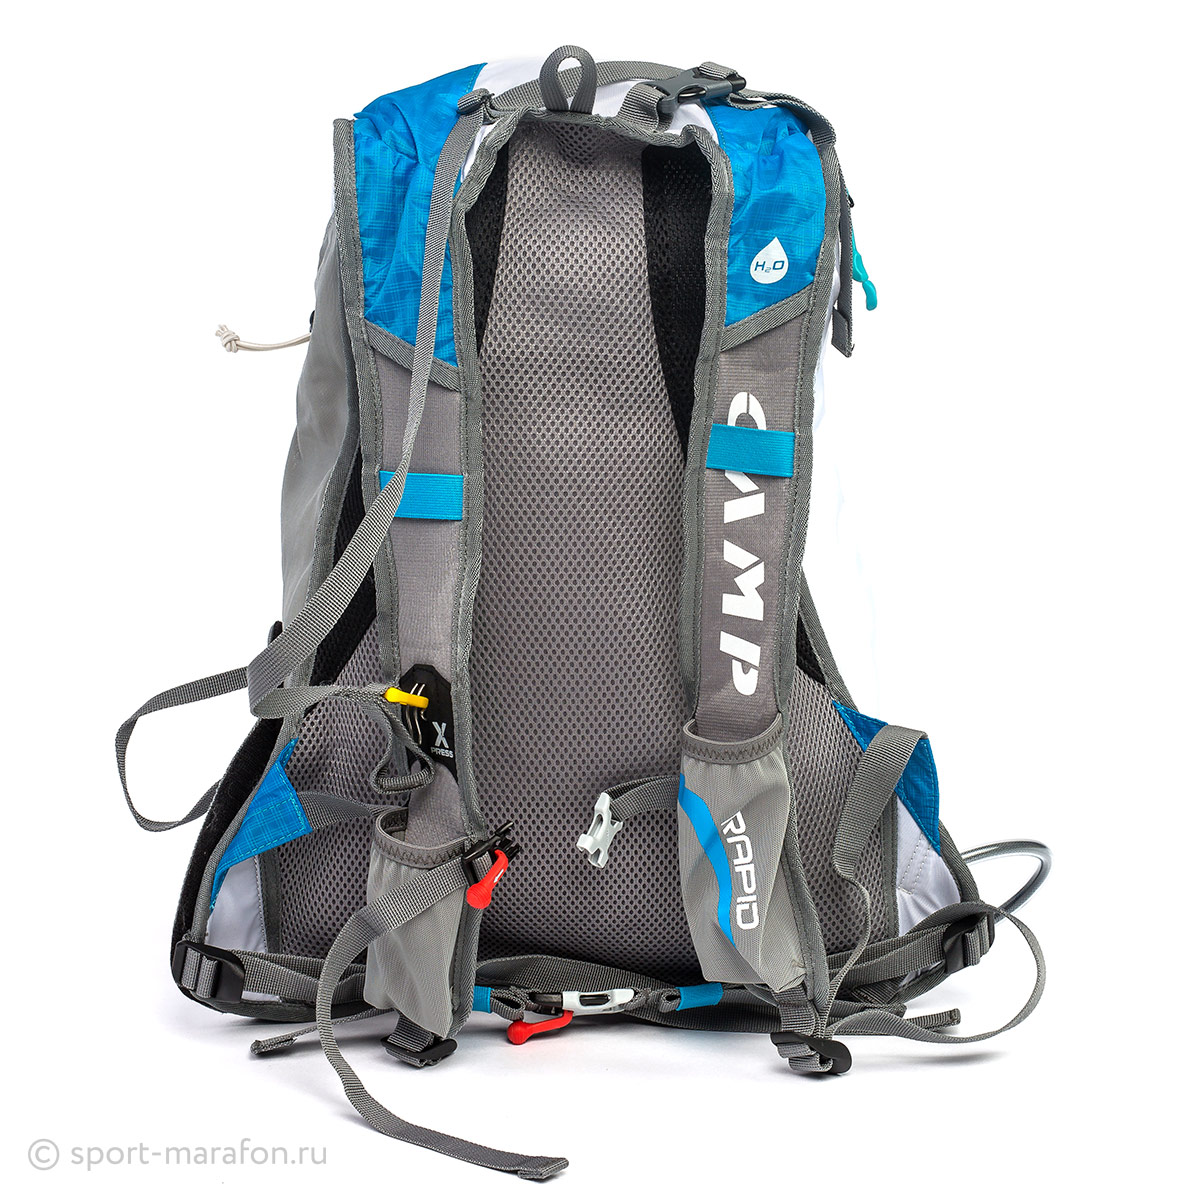 Рюкзак Camp Rapid 20 White/Light Blue - Фото 6 большая